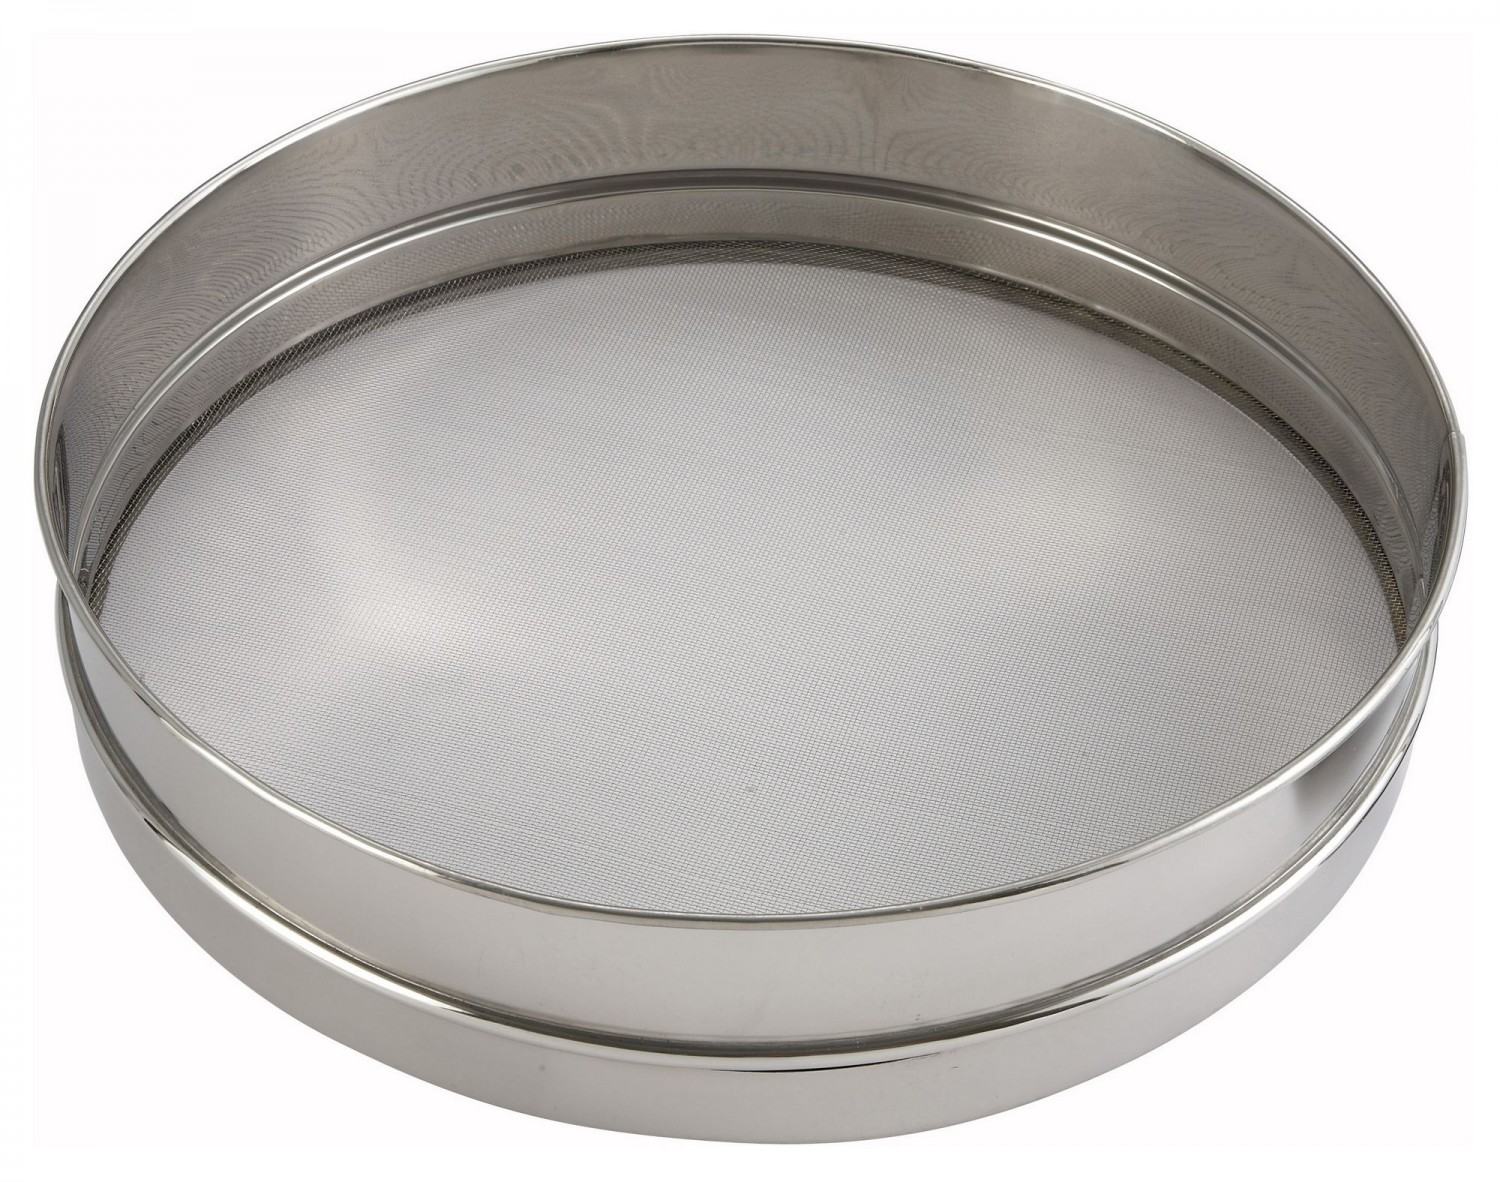 Winco SIV-14 Stainless Steel Mesh Sieve 14""